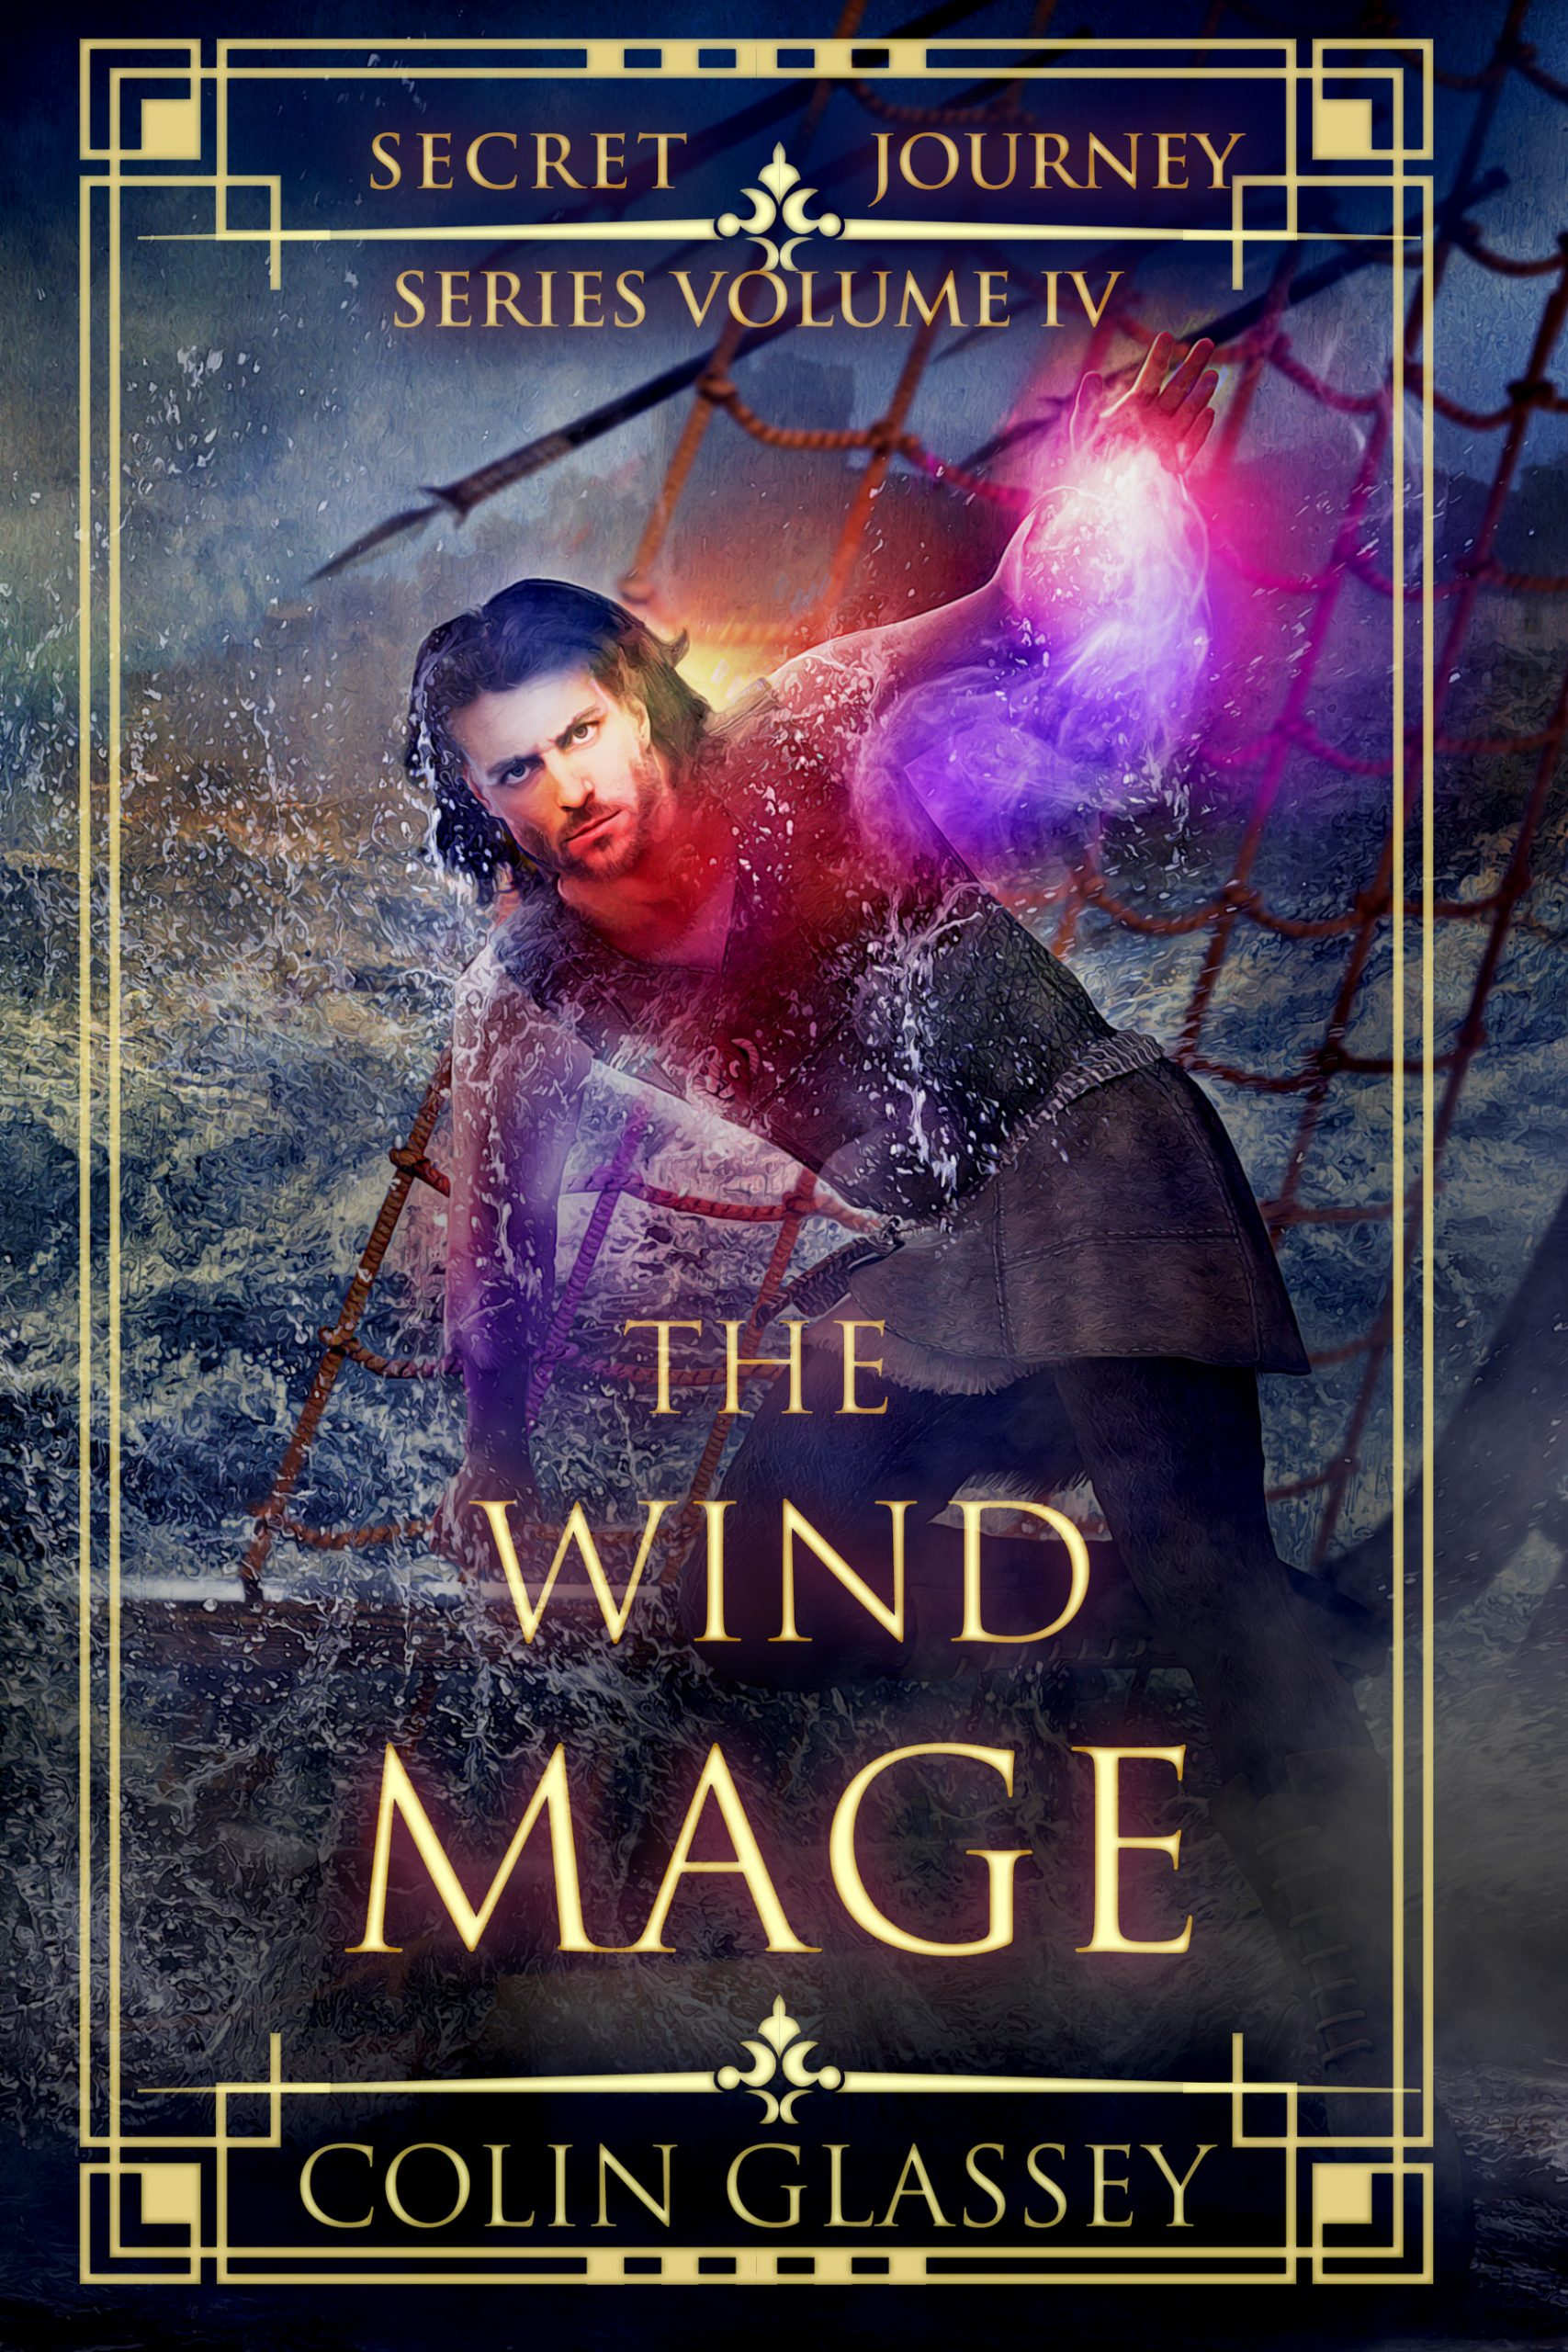 The Wind Mage - cover art